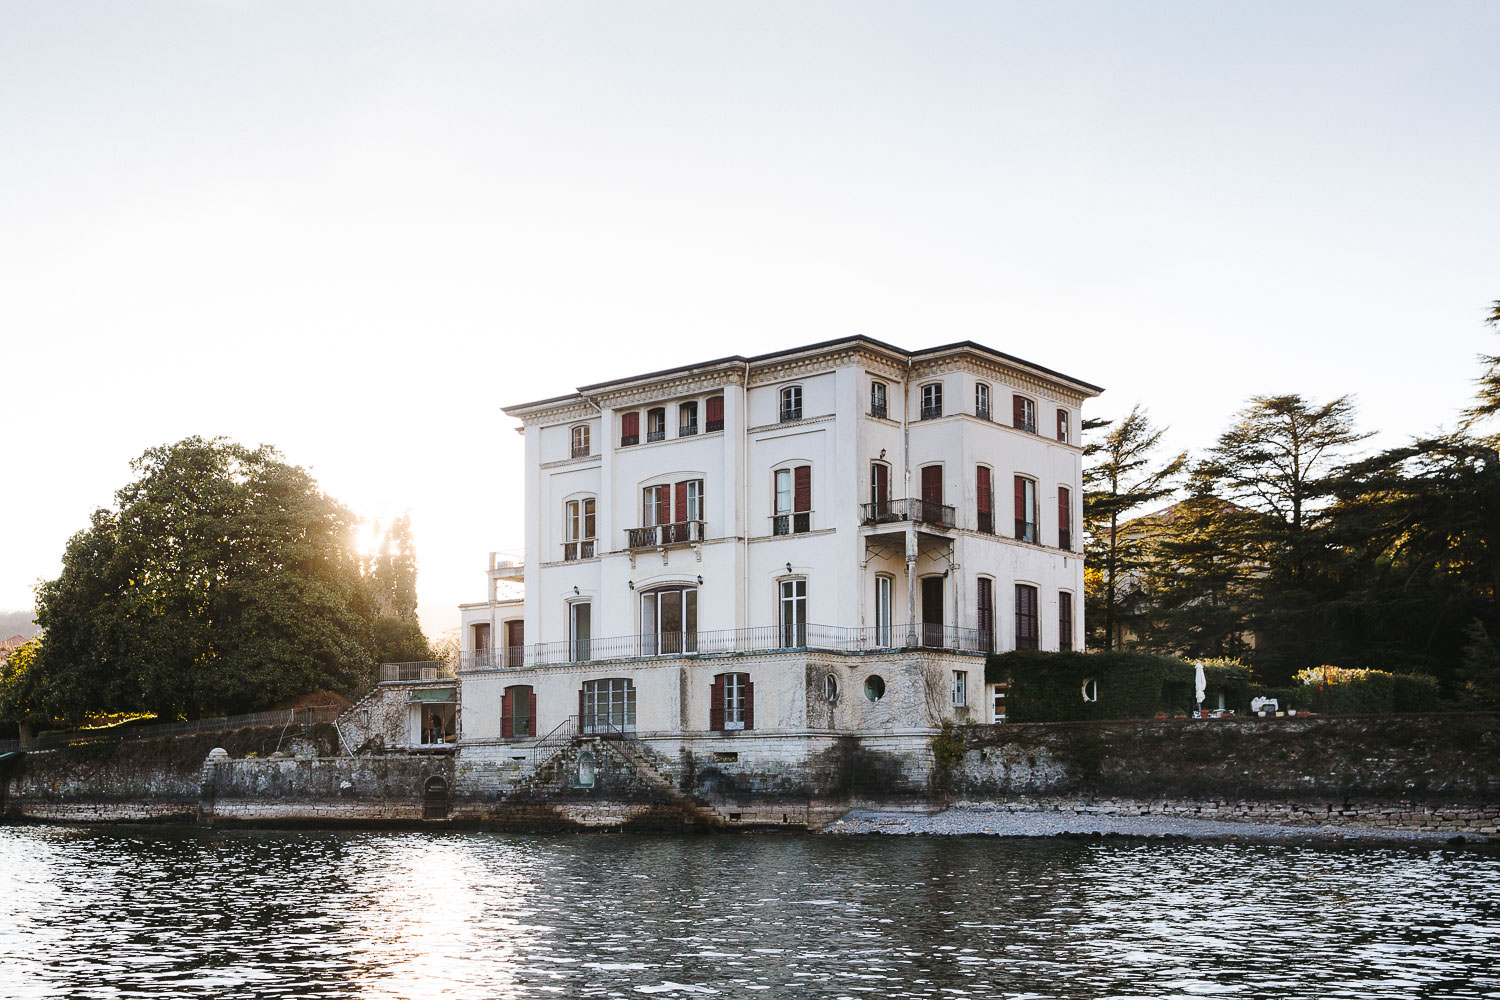 Villa Bianca Stucchi - wedding venue on Lake Como - exclusive and elegant wedding and event in Italy